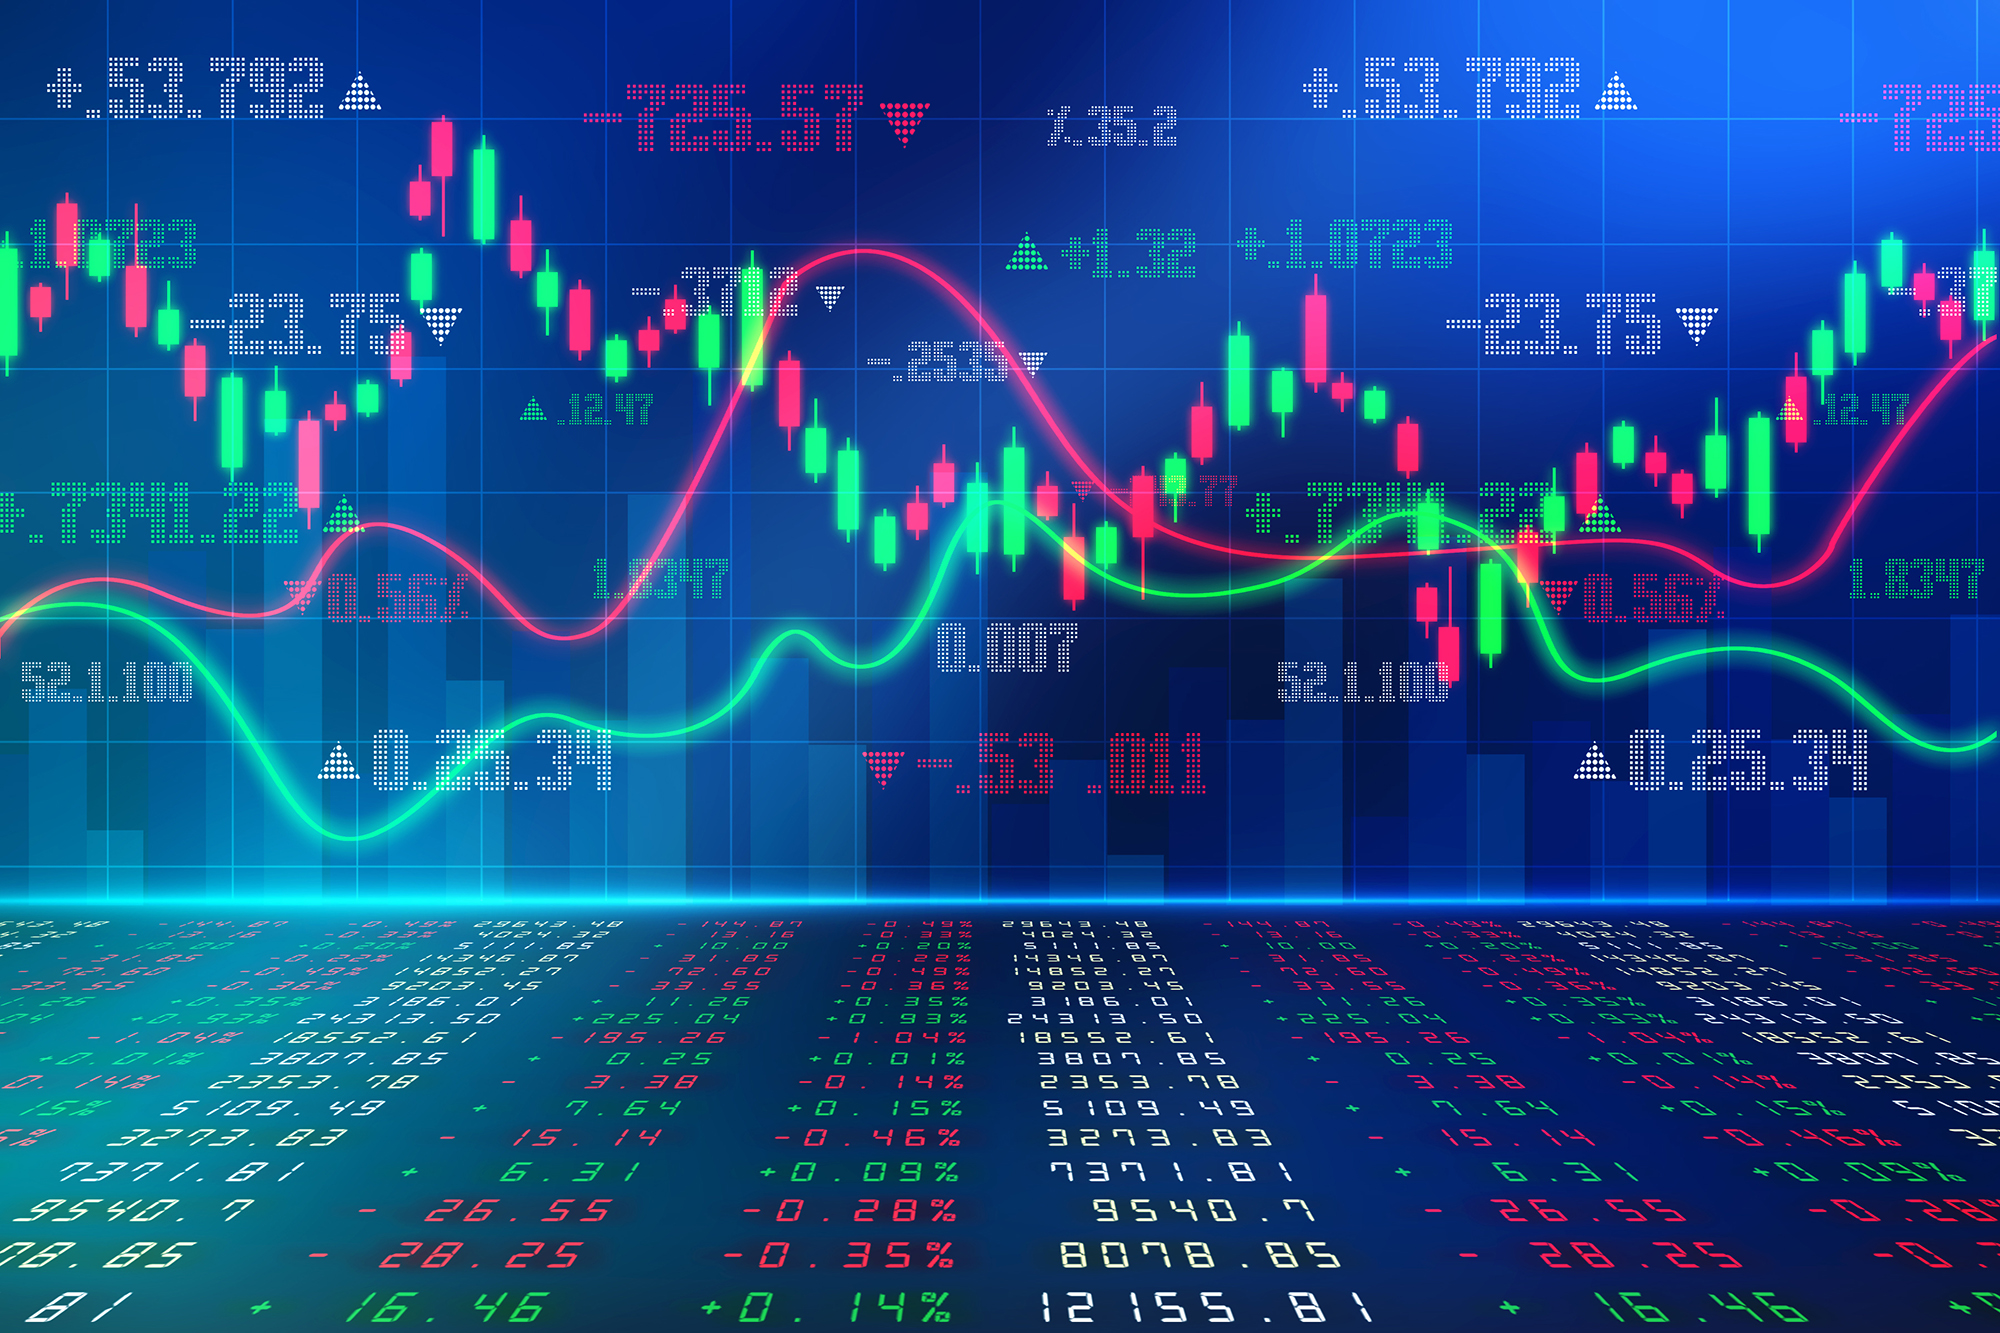 Forex currency trading company duckworth vs hewitt betting expert tips